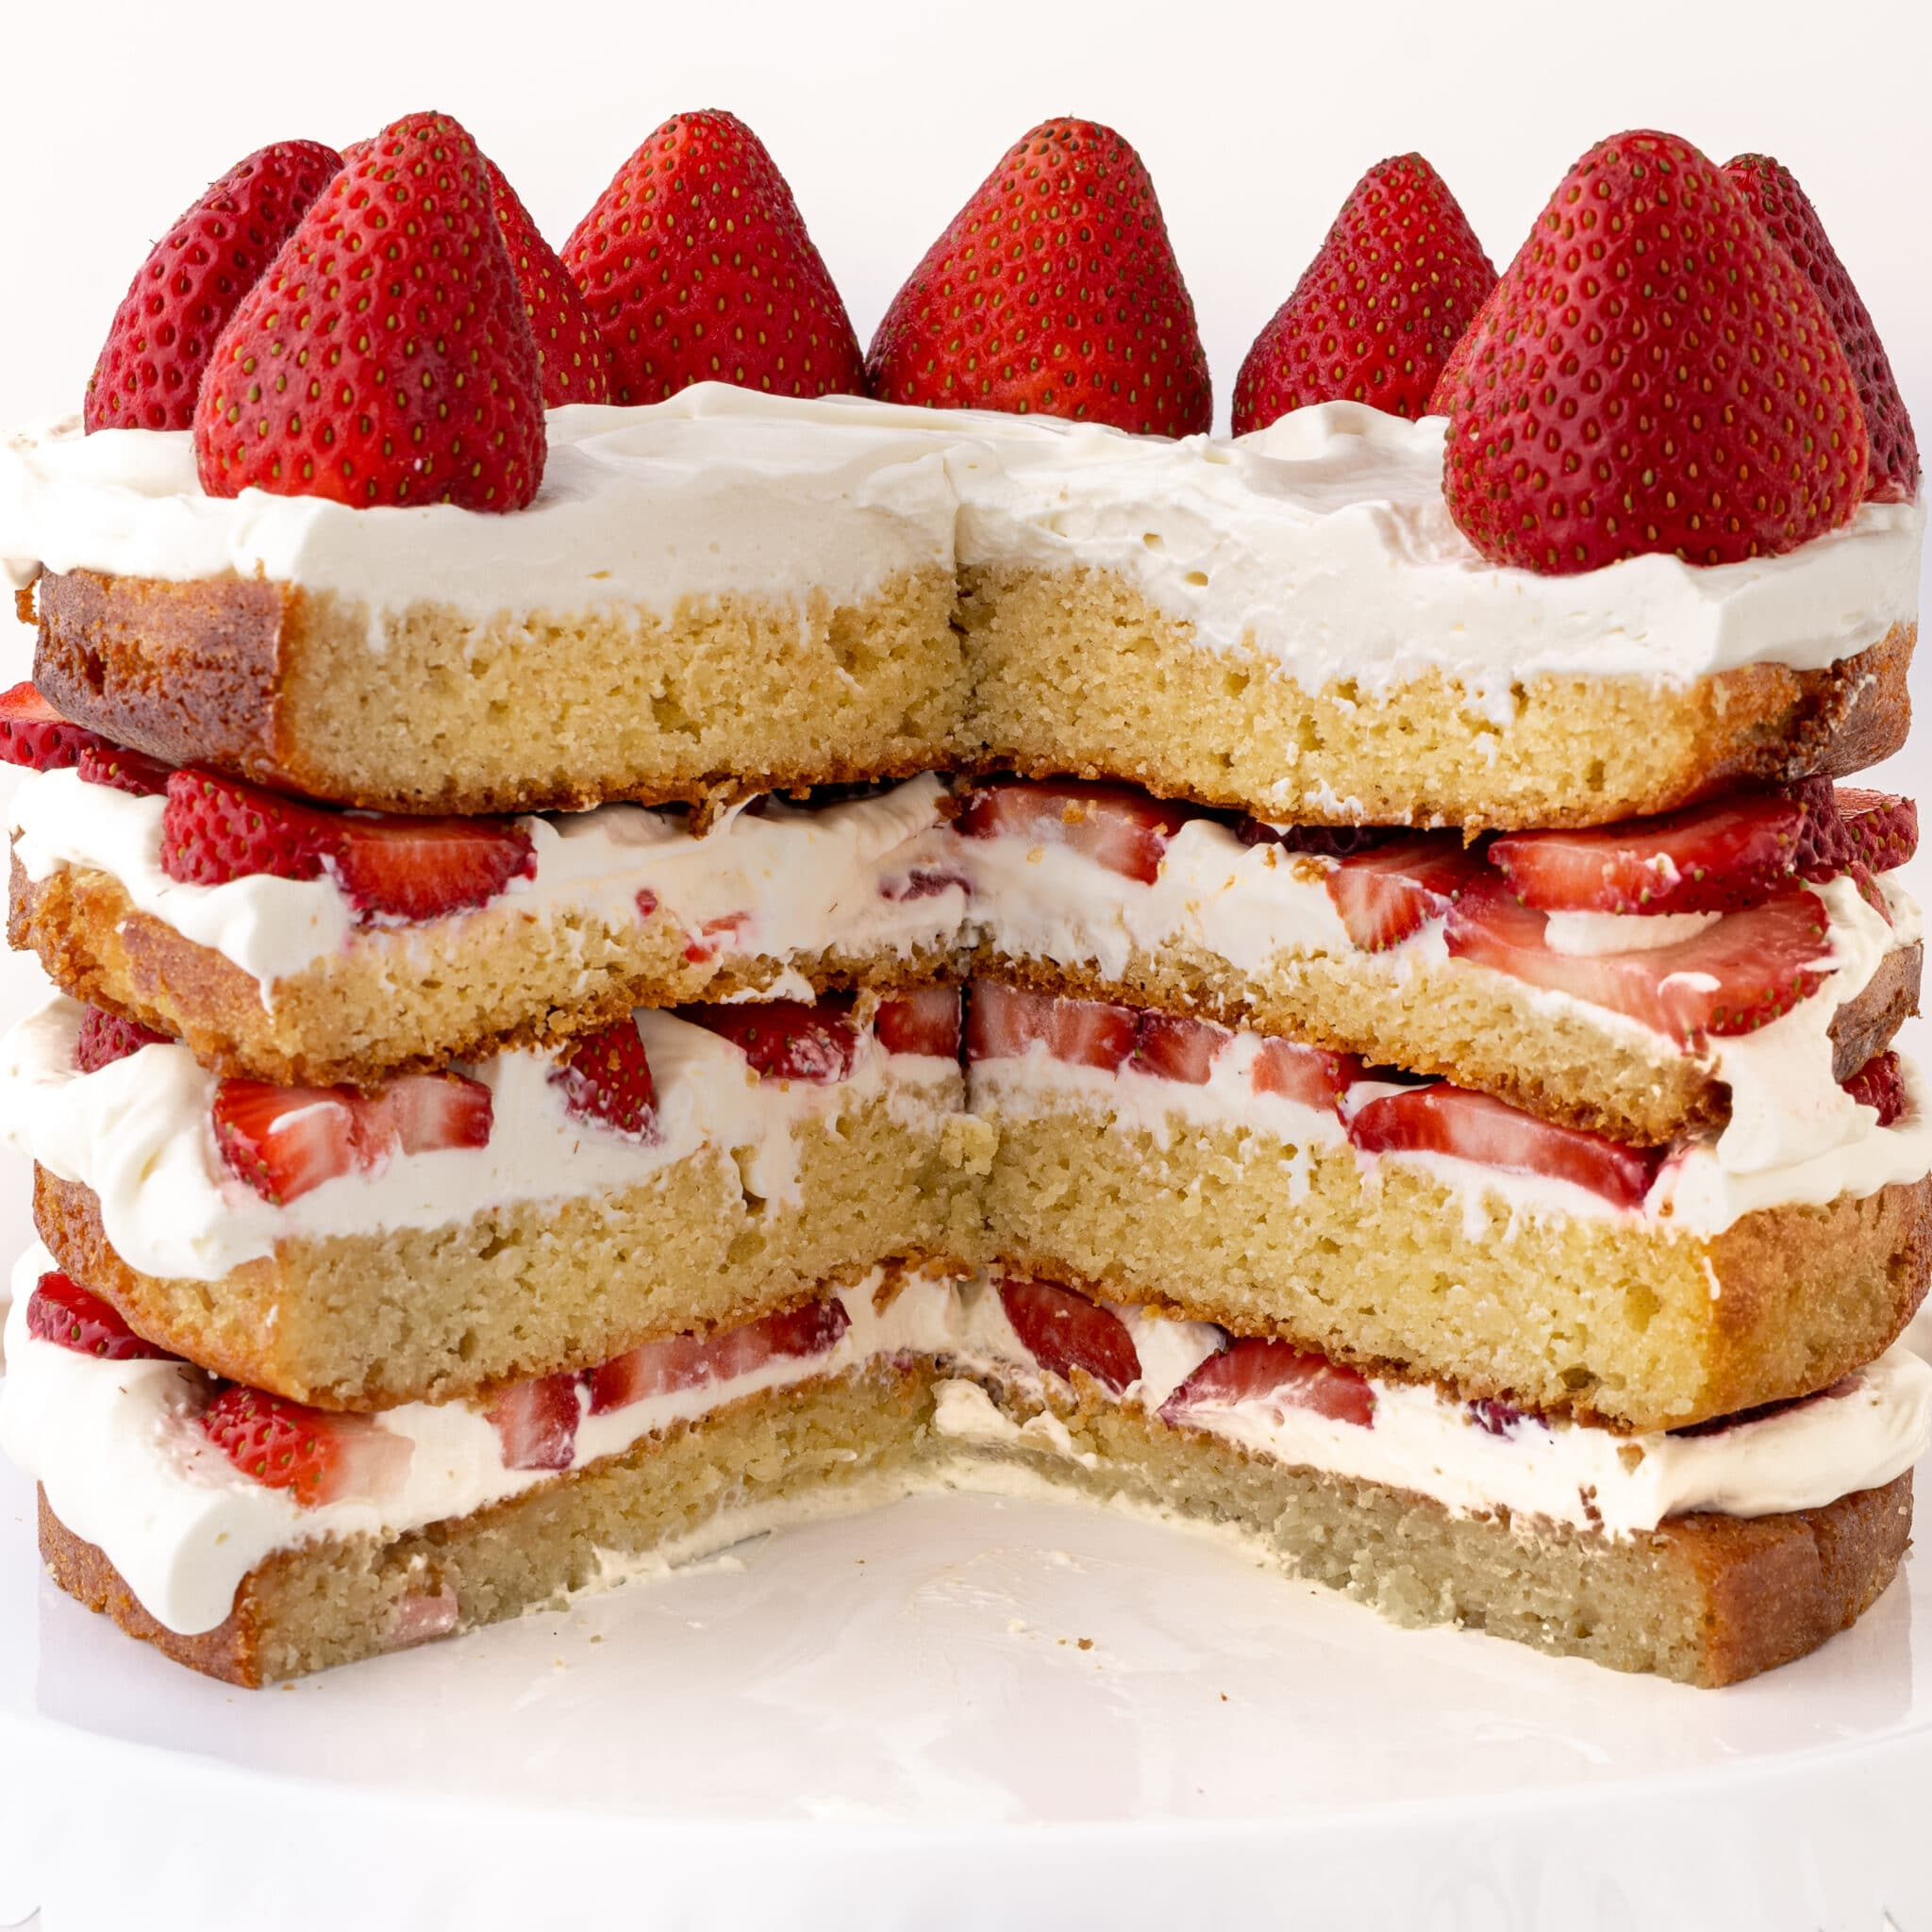 A four layer keto strawberry shortcake  sliced with fresh strawberries and whipped cream against a bright white background.